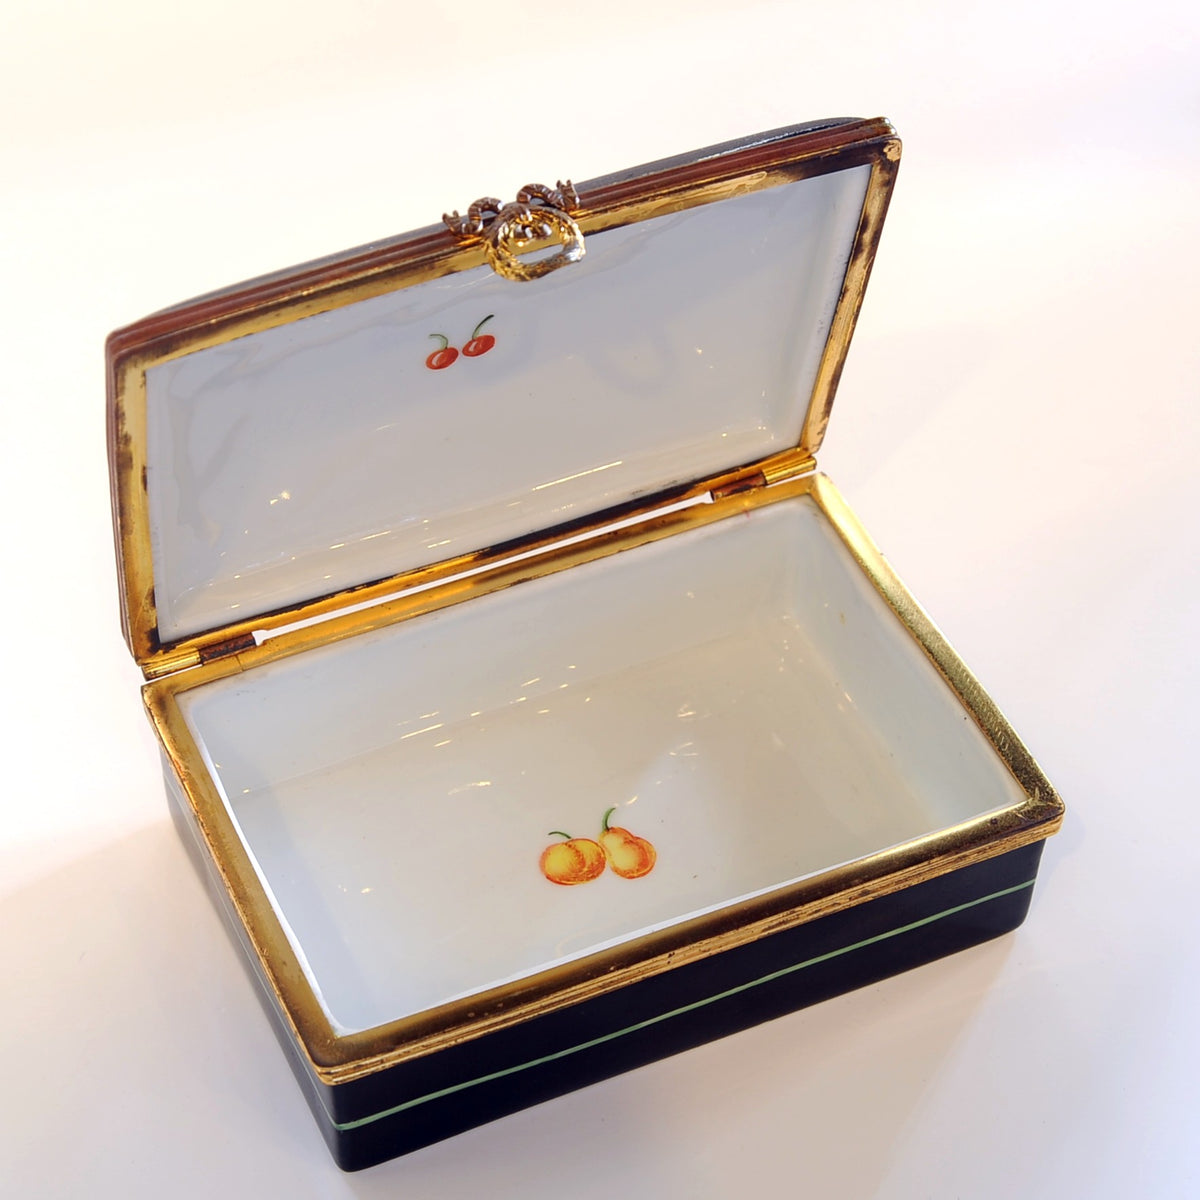 Tiffany & Co.  Private Stock Porcelain Handpainted Dresser Box, France, Early 20th C.